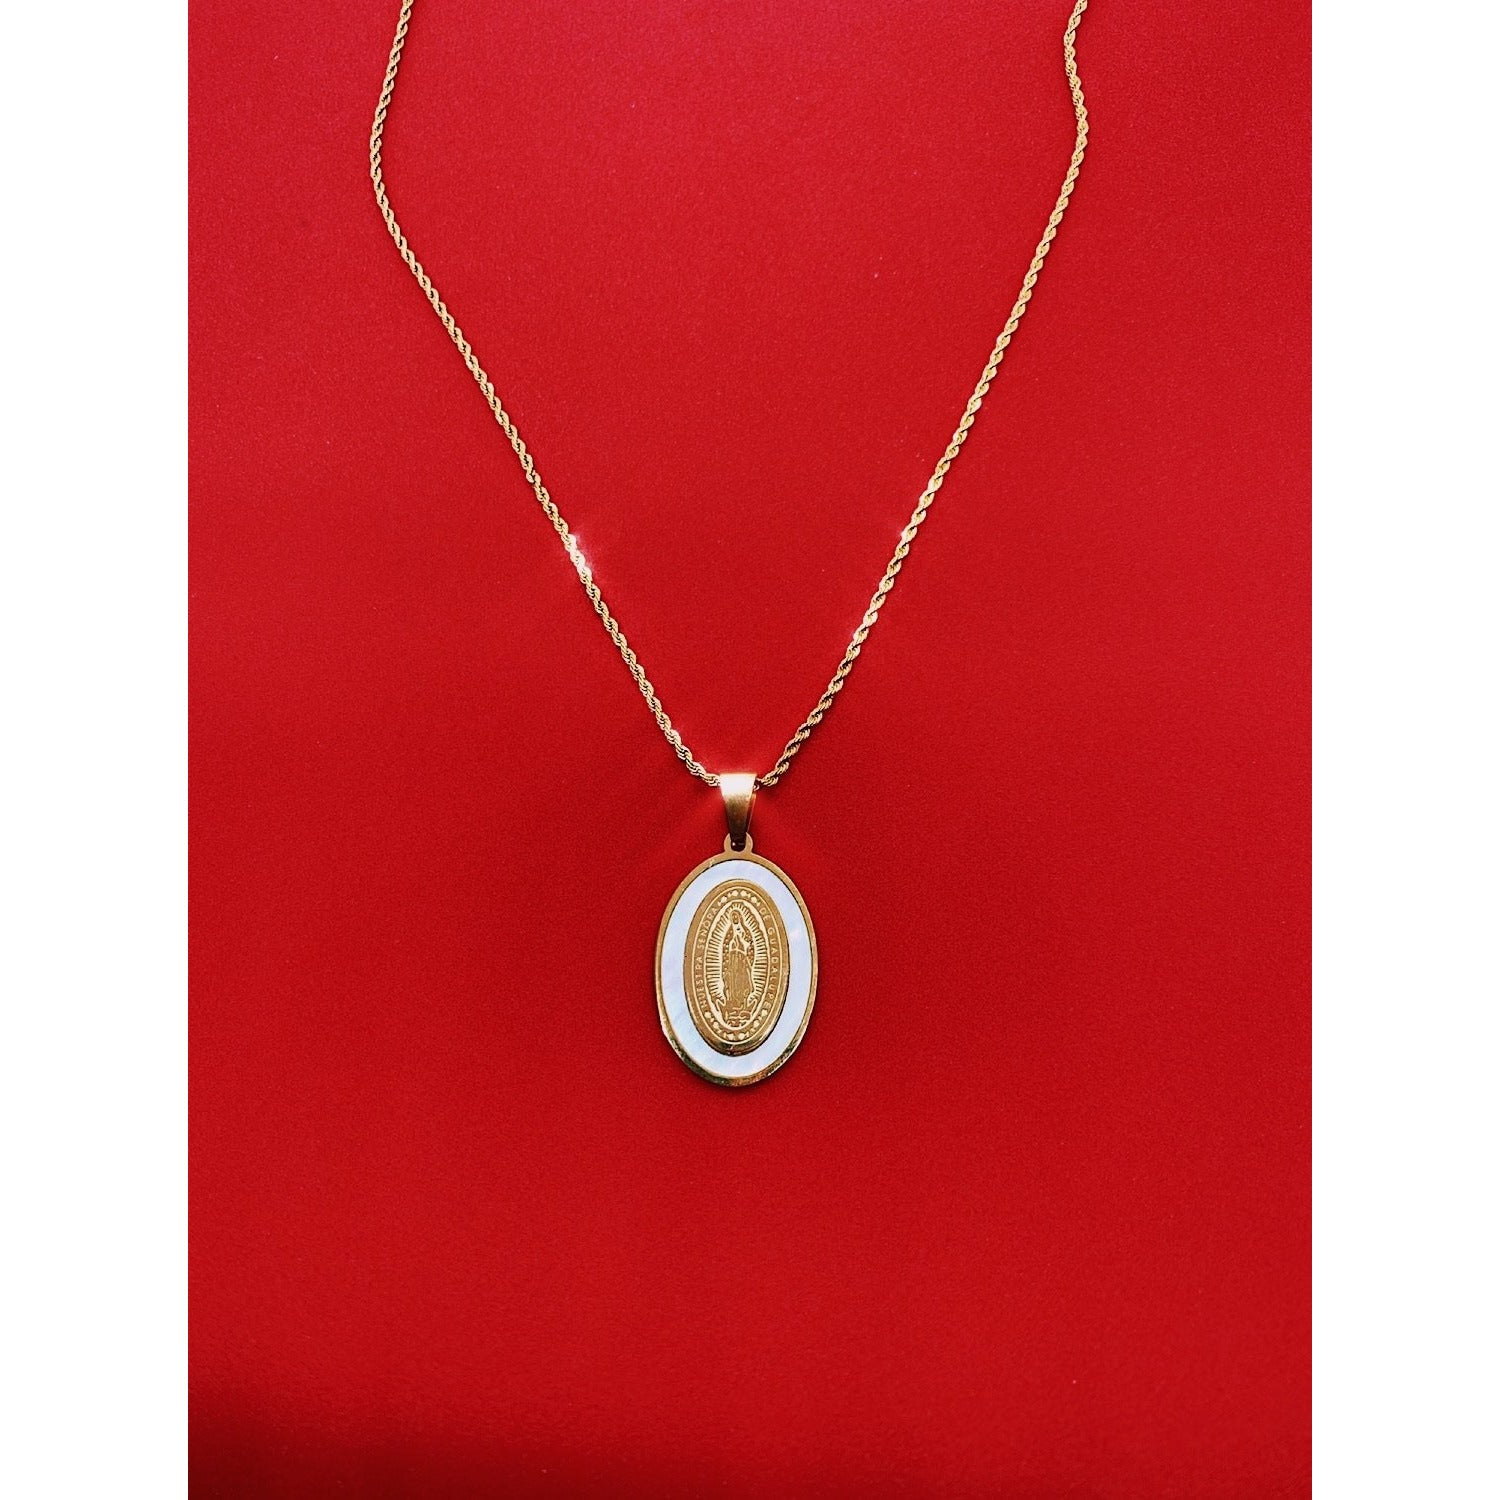 24k Gold plated Pearl Guadalupe Necklace